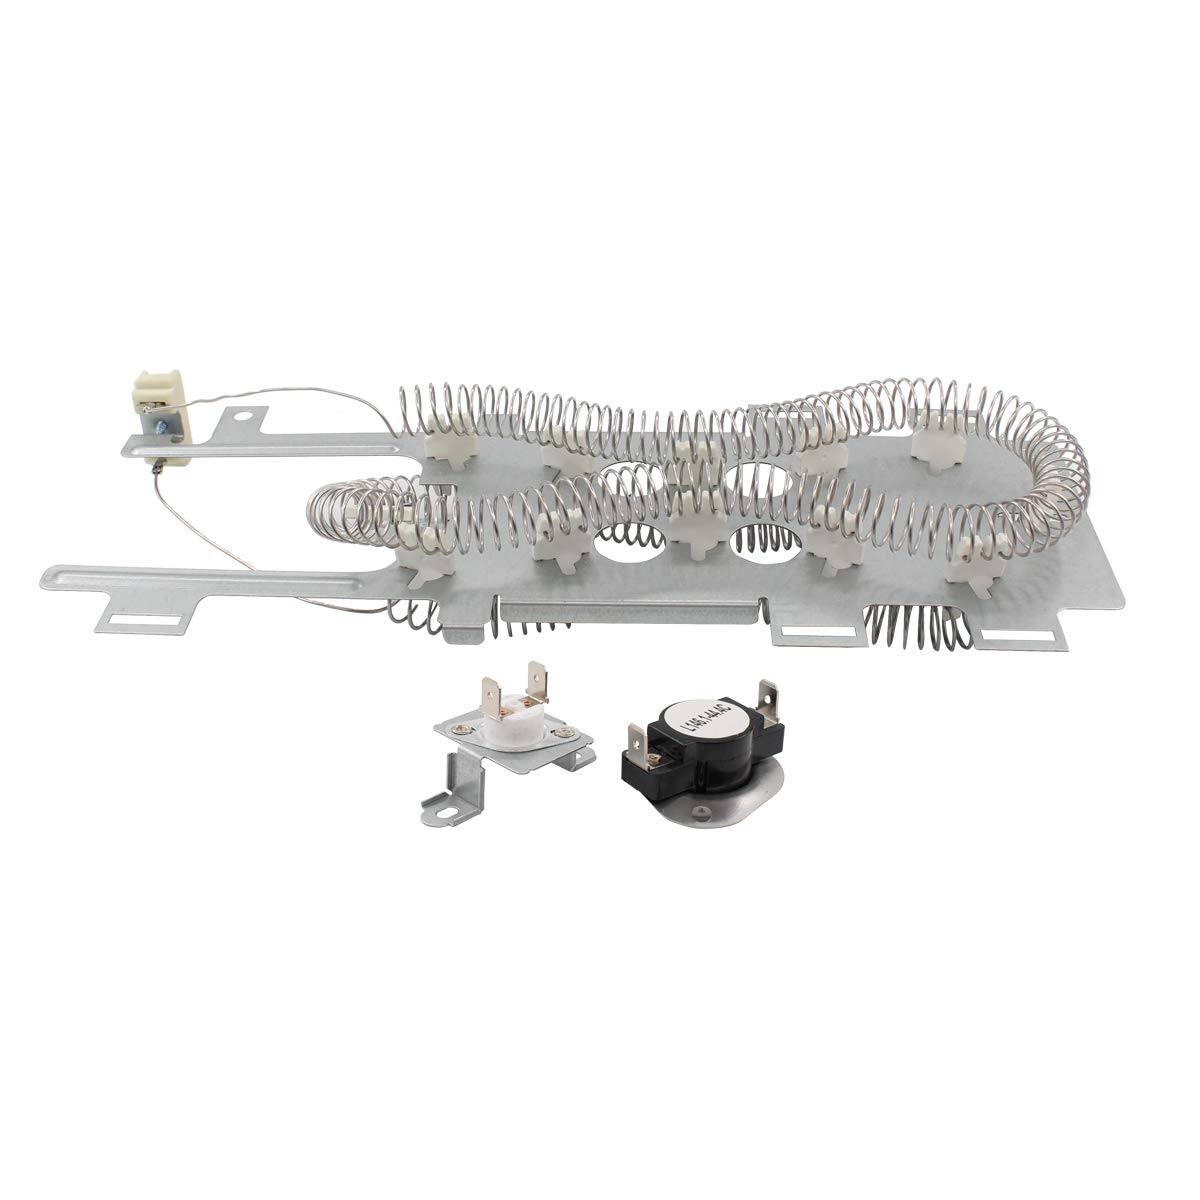 ApplianPar 8544771 Clothes Dryer Heating Element with 279973 Thermal Cut-Off Fuse Thermostat Kit for Whirlpool Kenmore Maytag Dryers